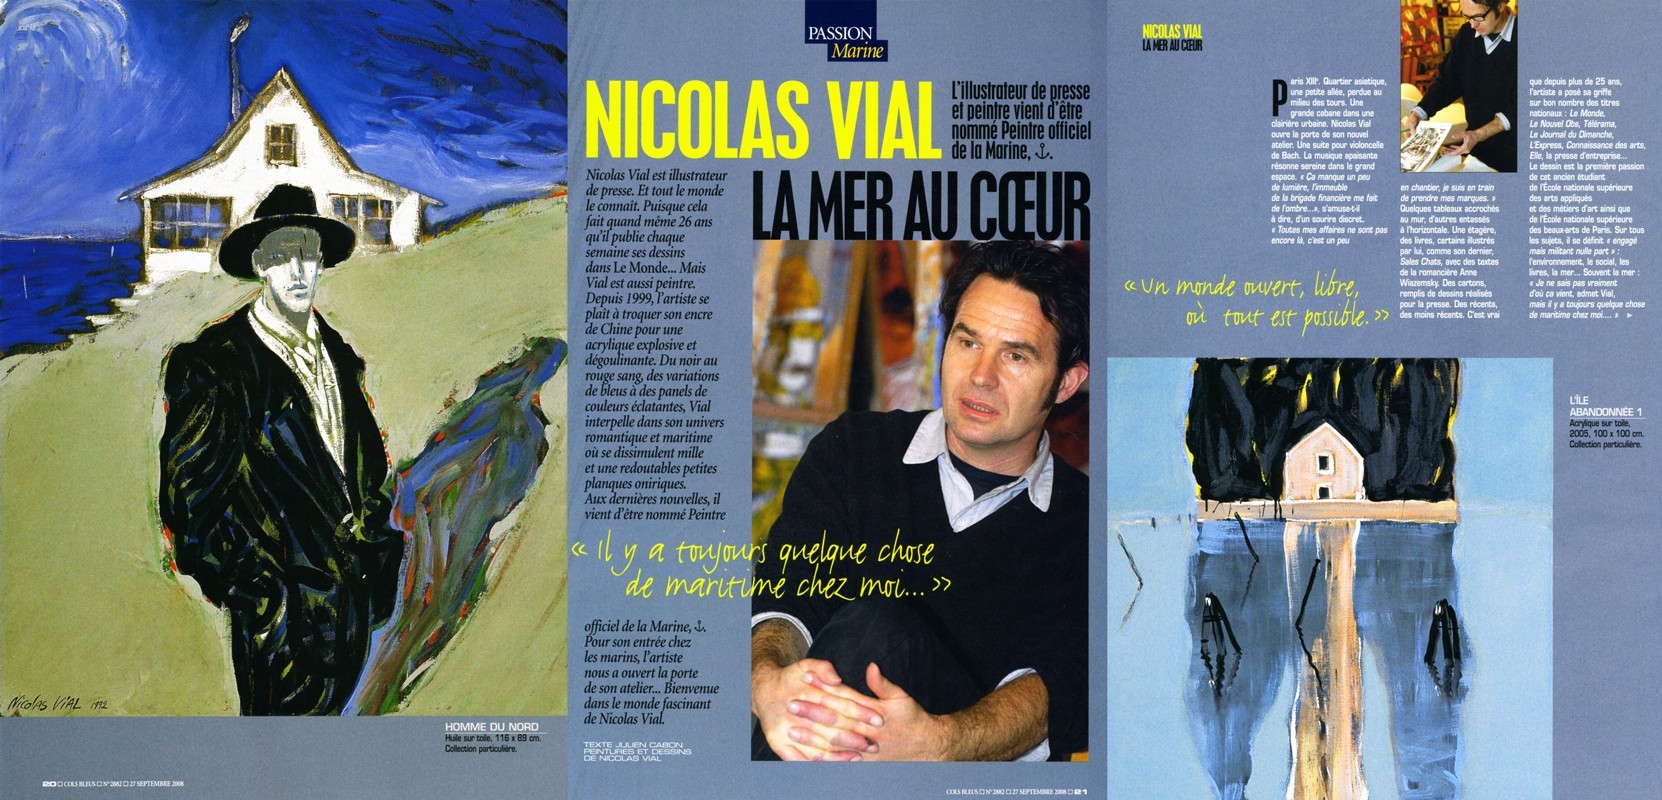 https://nicolasvial-peintures.com:443/files/gimgs/th-7_7_p25b20080927.jpg